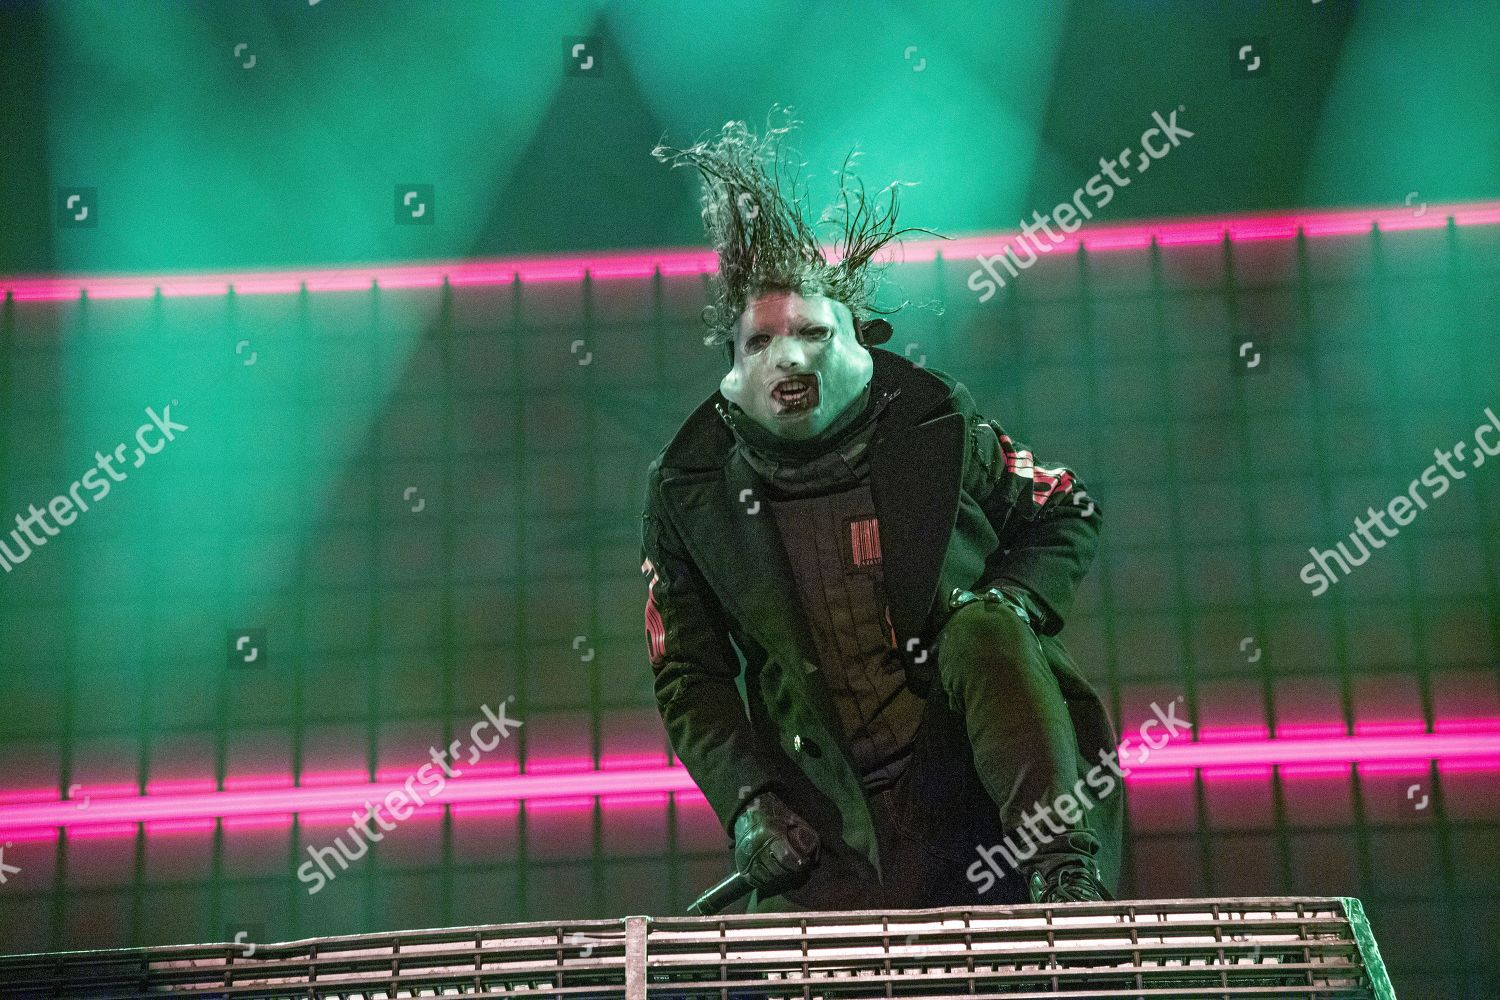 Corey Taylor Slipknot performs during Festival dete Editorial Stock